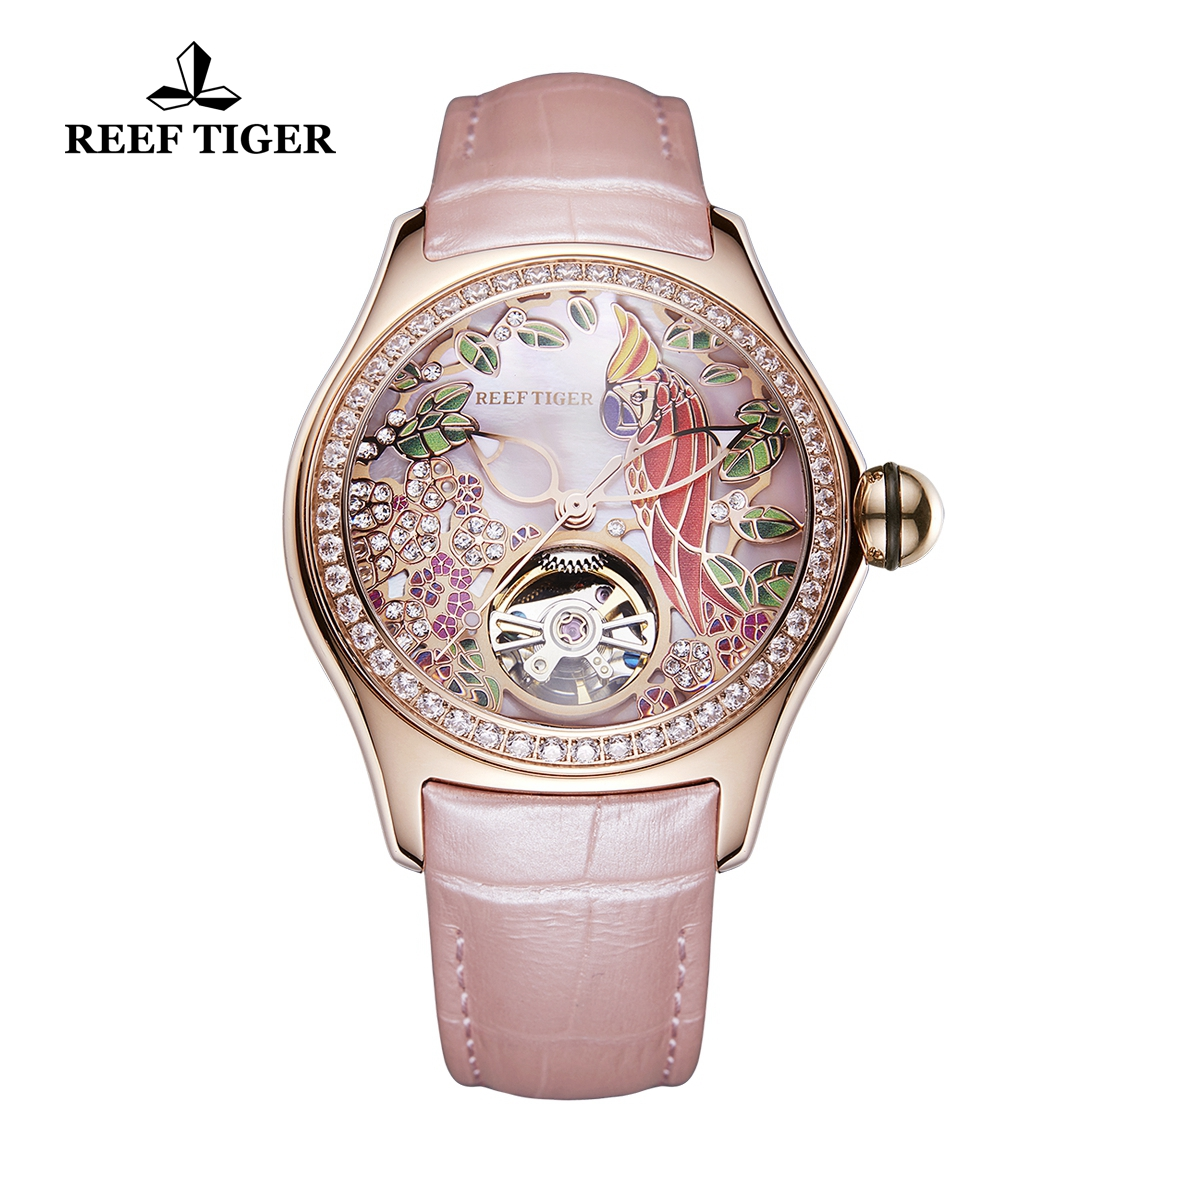 Reef Tiger Aurora Parrot Casual Diamonds Bezel Watch Rose Gold Case Leather Strap RGA7105-PPPD